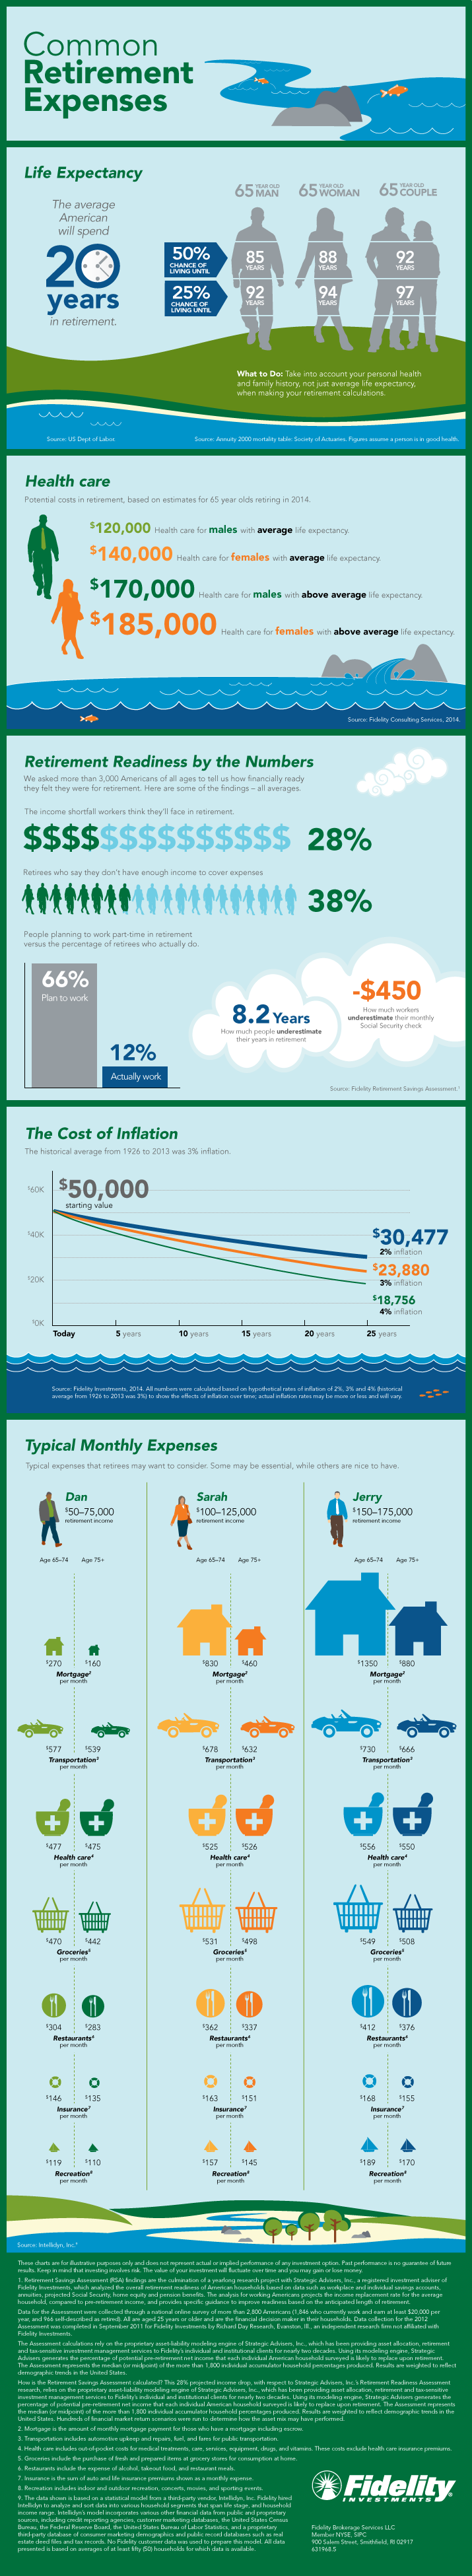 Infographic showing common retirement expenses.